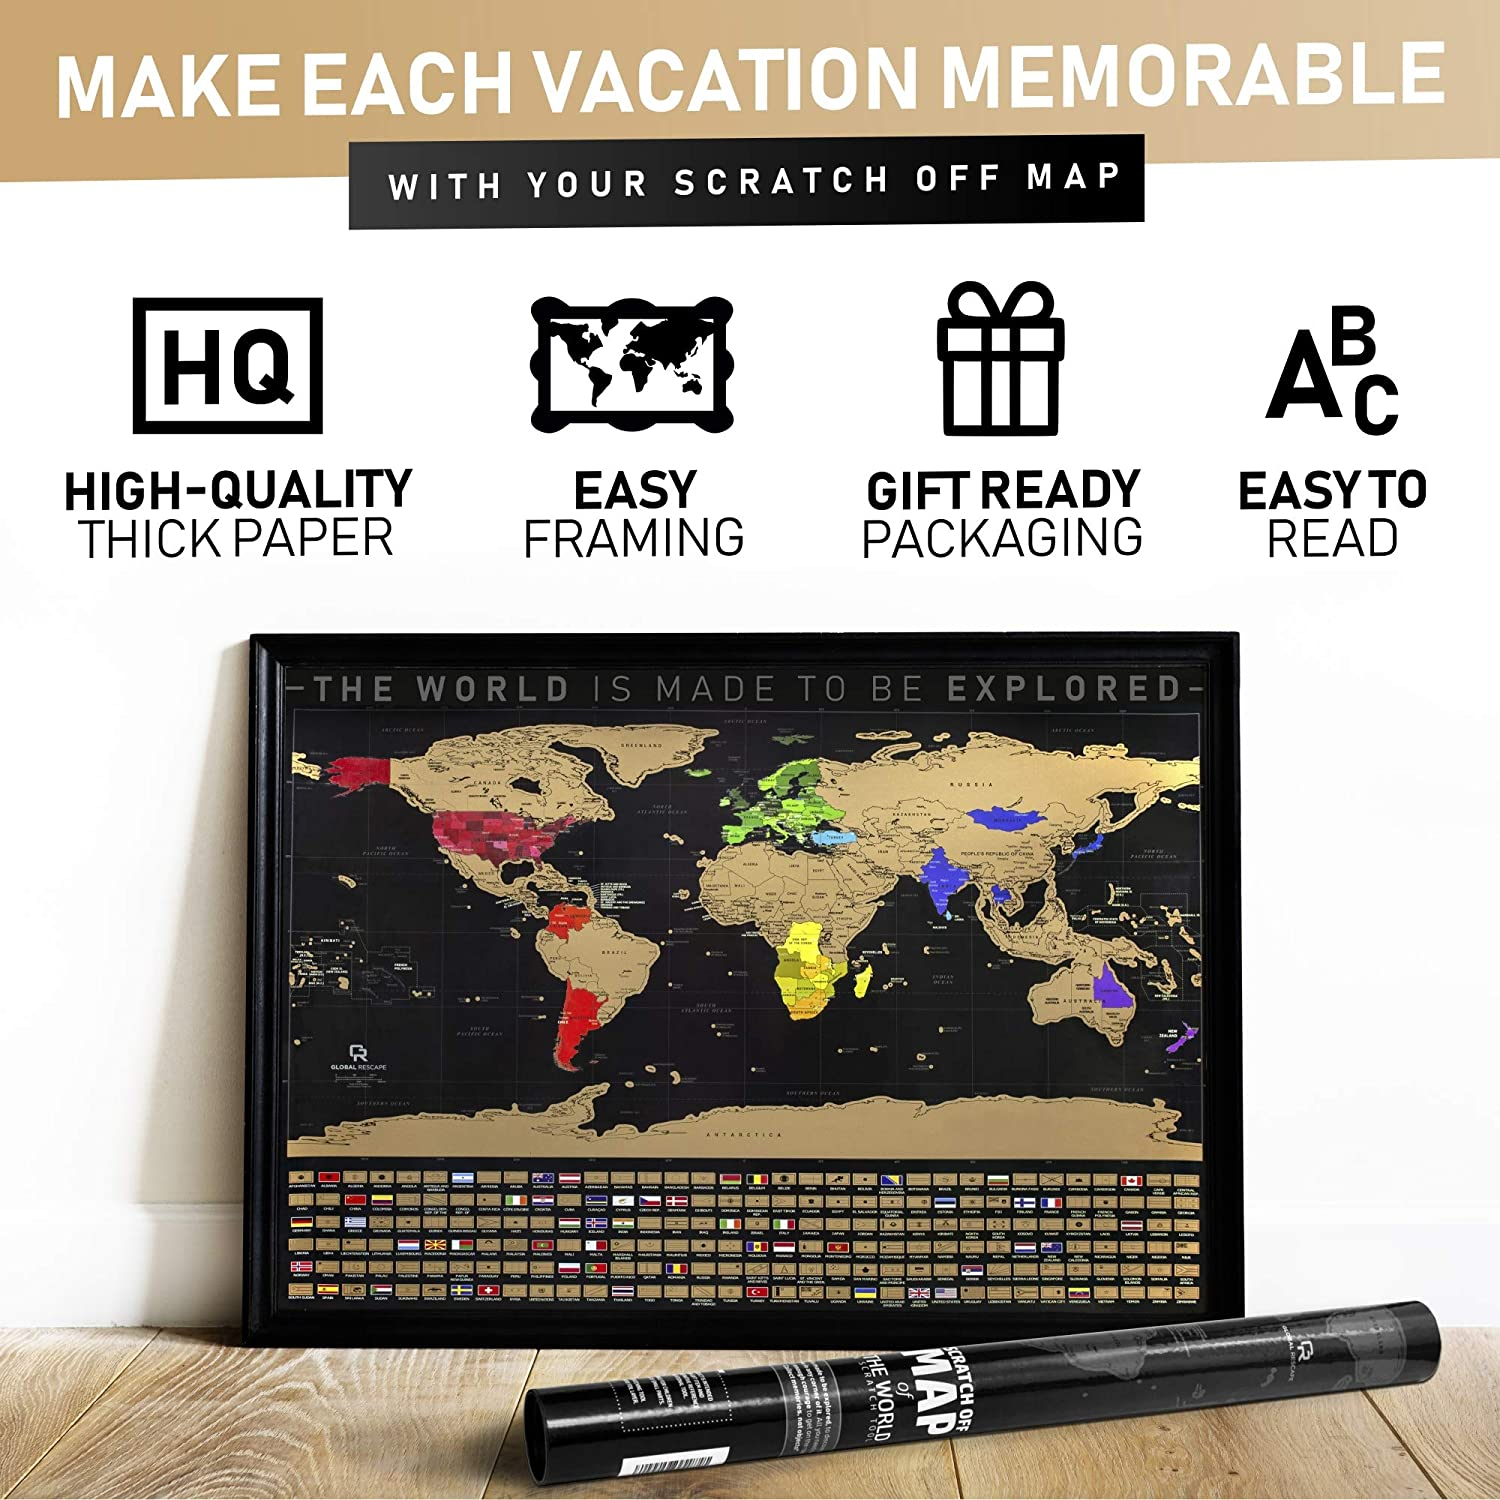 Amazon.com: Scratch Off Map of the World - Gold Foil Black ...